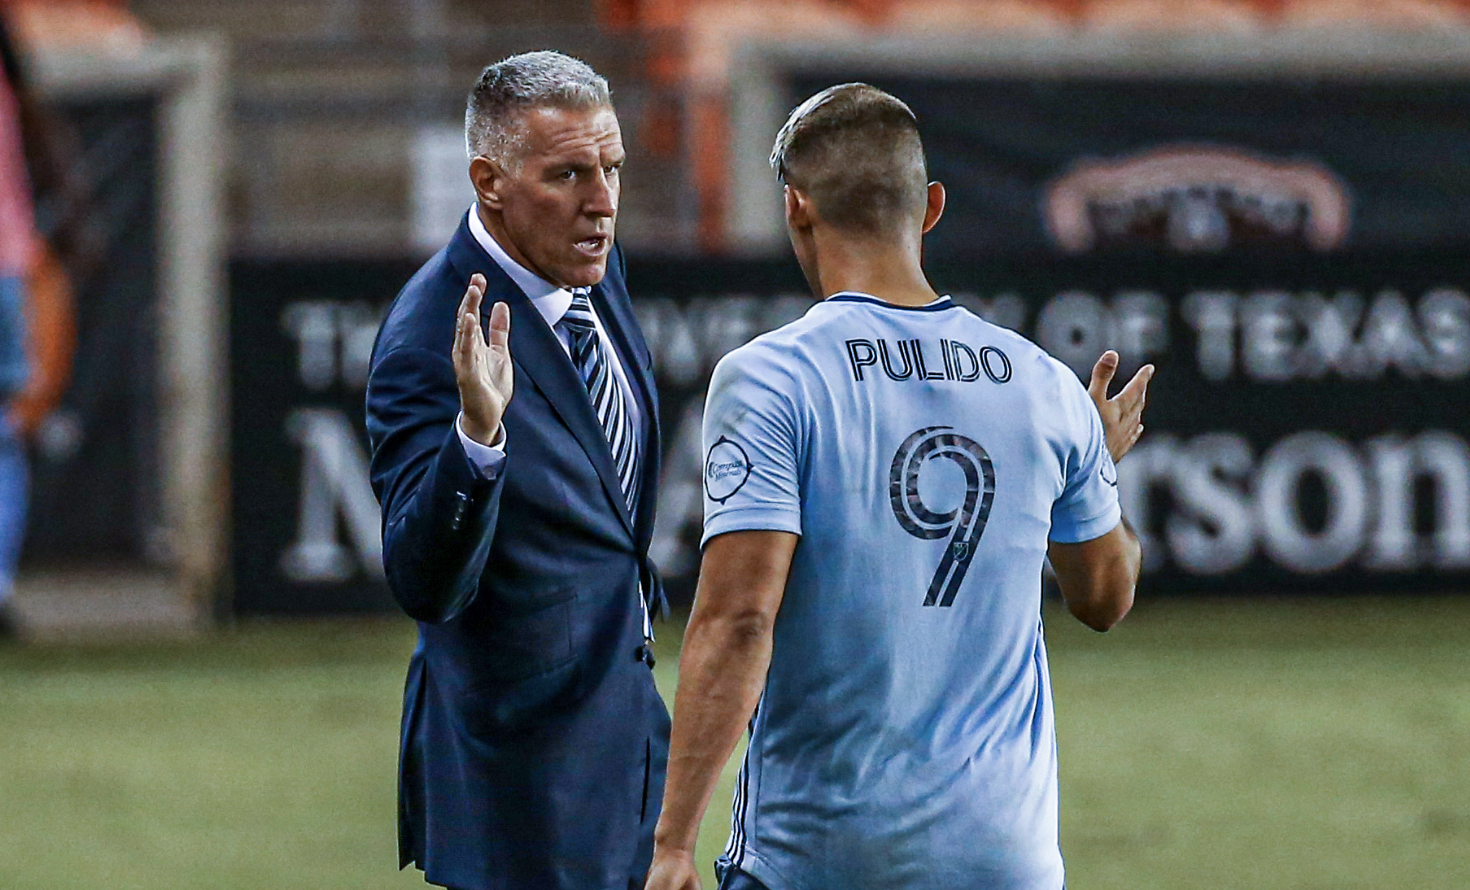 Manager Peter Vermes braced for 600th MLS match as player or coach on Friday   Sporting Kansas City